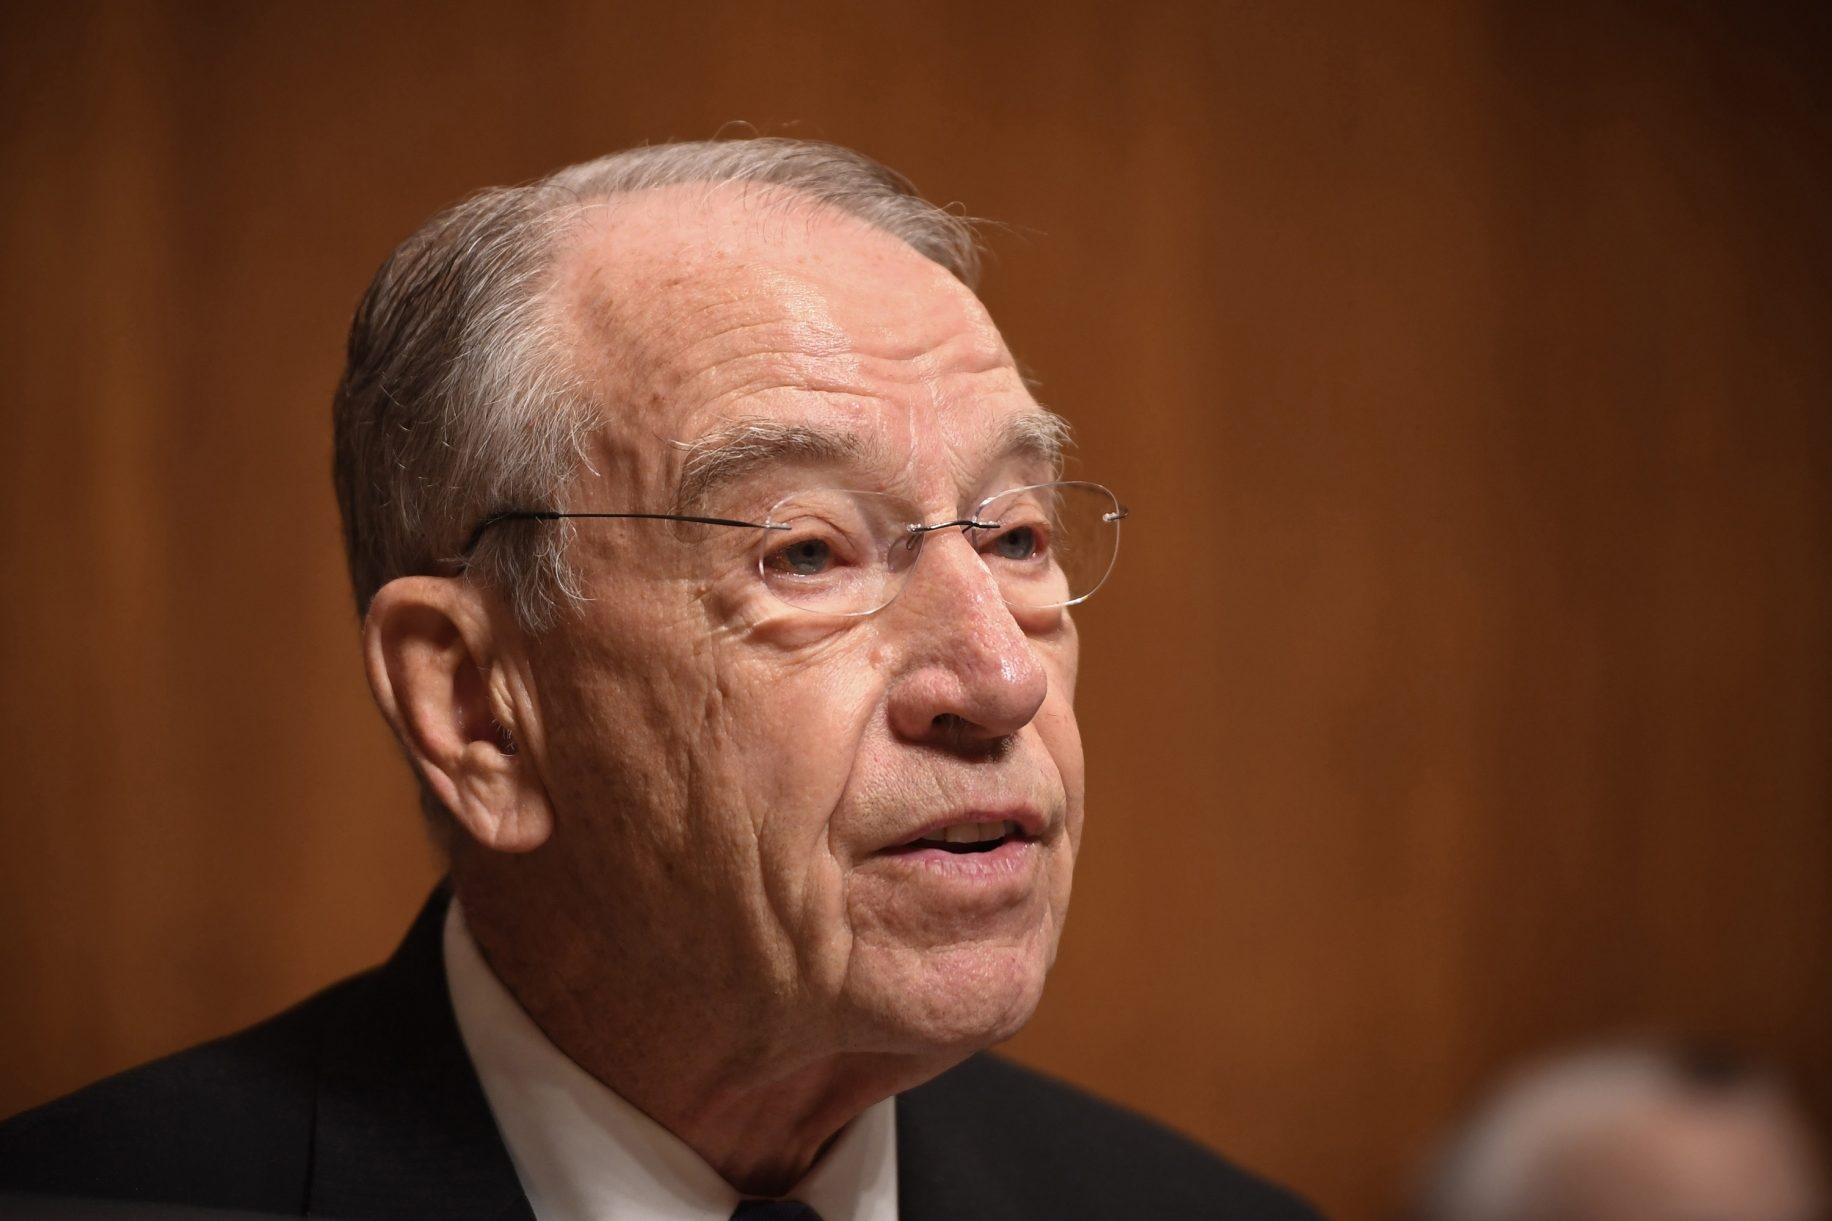 Veto override likely if Trump vetoes military base renaming legislation, Sen. Chuck Grassley predicts